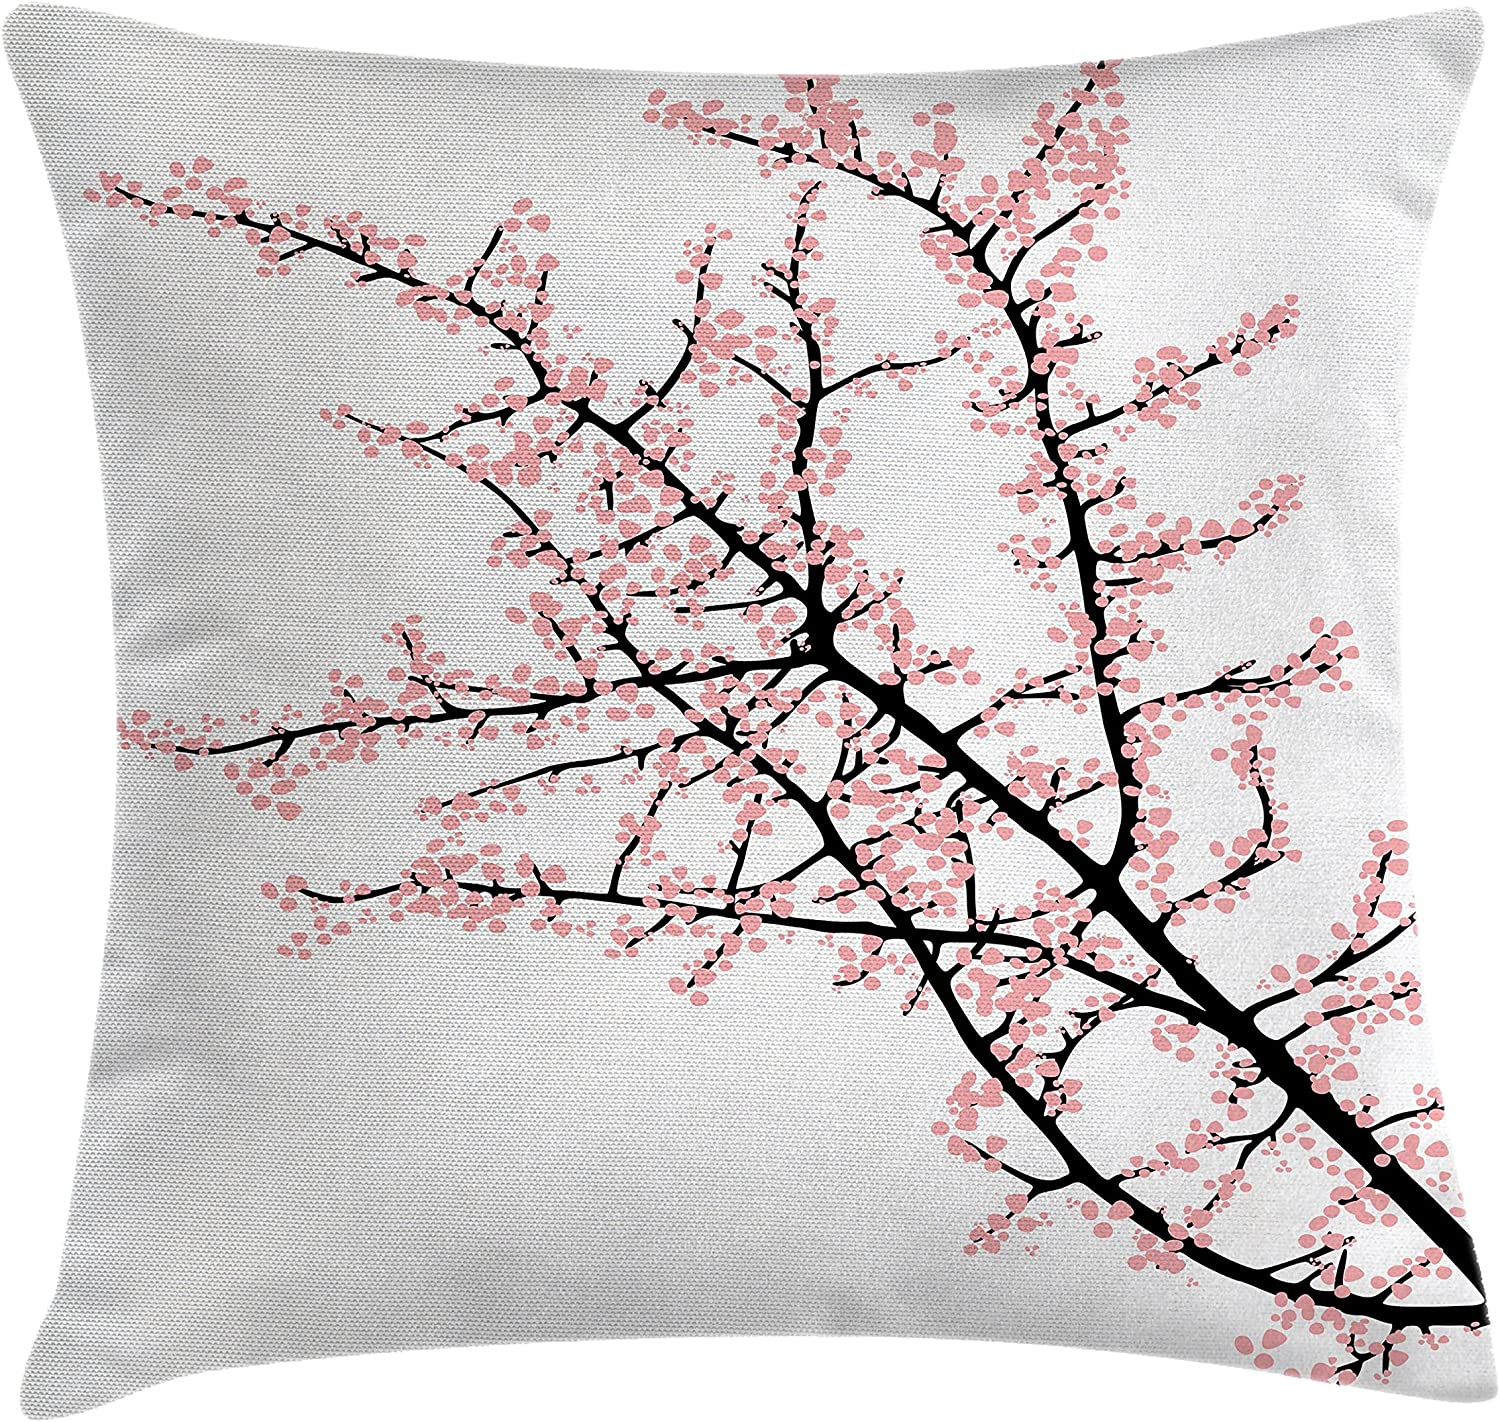 "Ambesonne Floral Throw Pillow Cushion Cover, Cherry Branch with Pink Blossom Traditional Style Illustration Asia Culture Themed, Decorative Square Accent Pillow Case, 16"" X 16"", Pink Black"